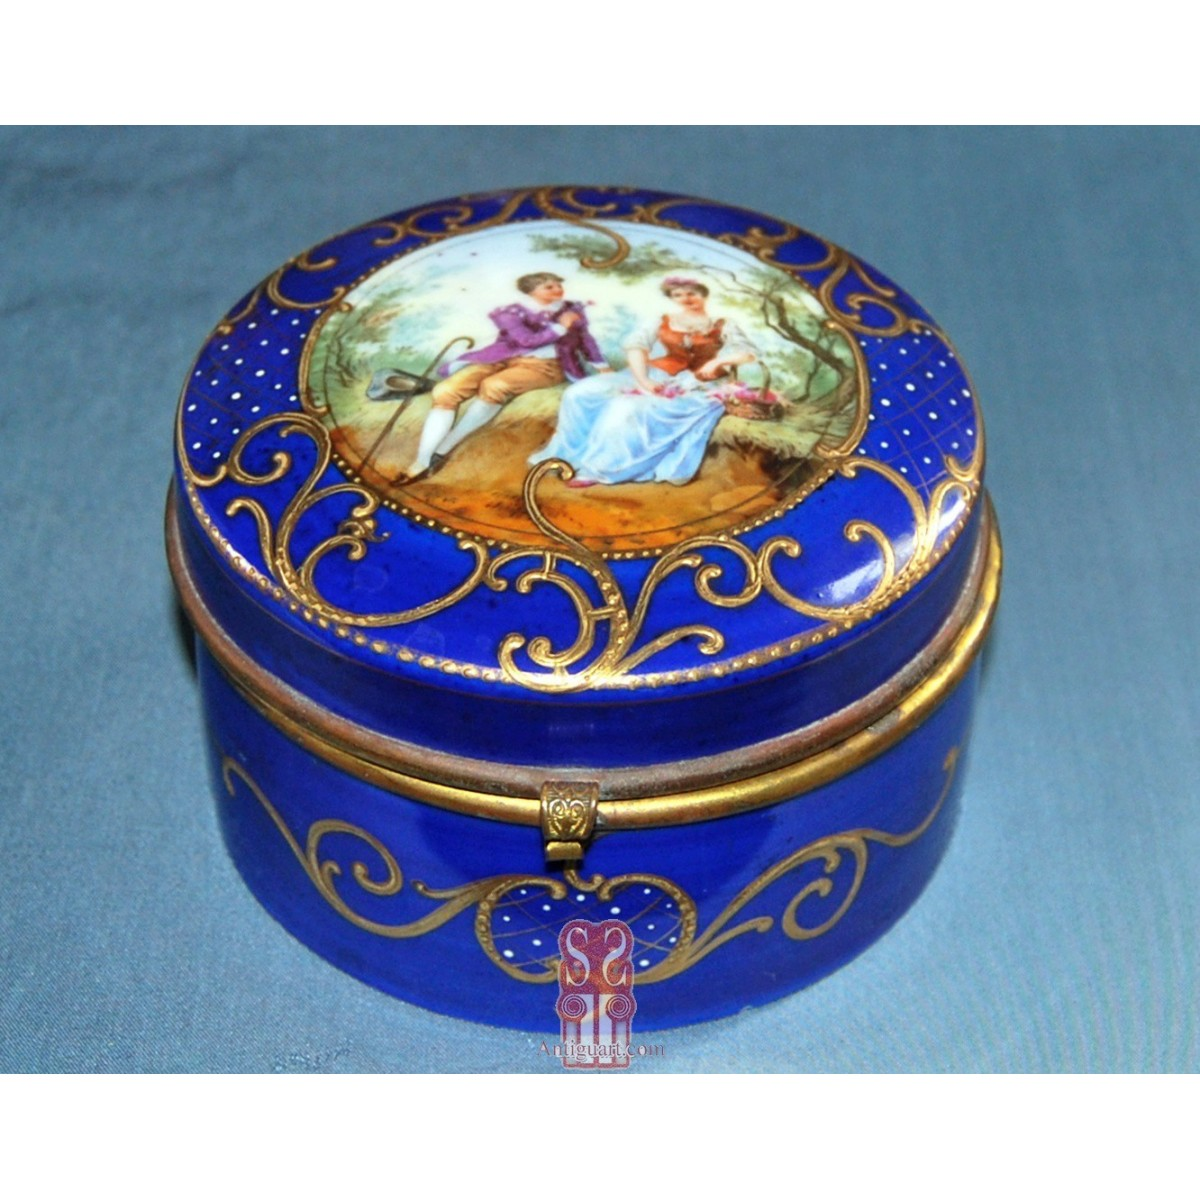 Box, Sevres porcelain, 19th century.